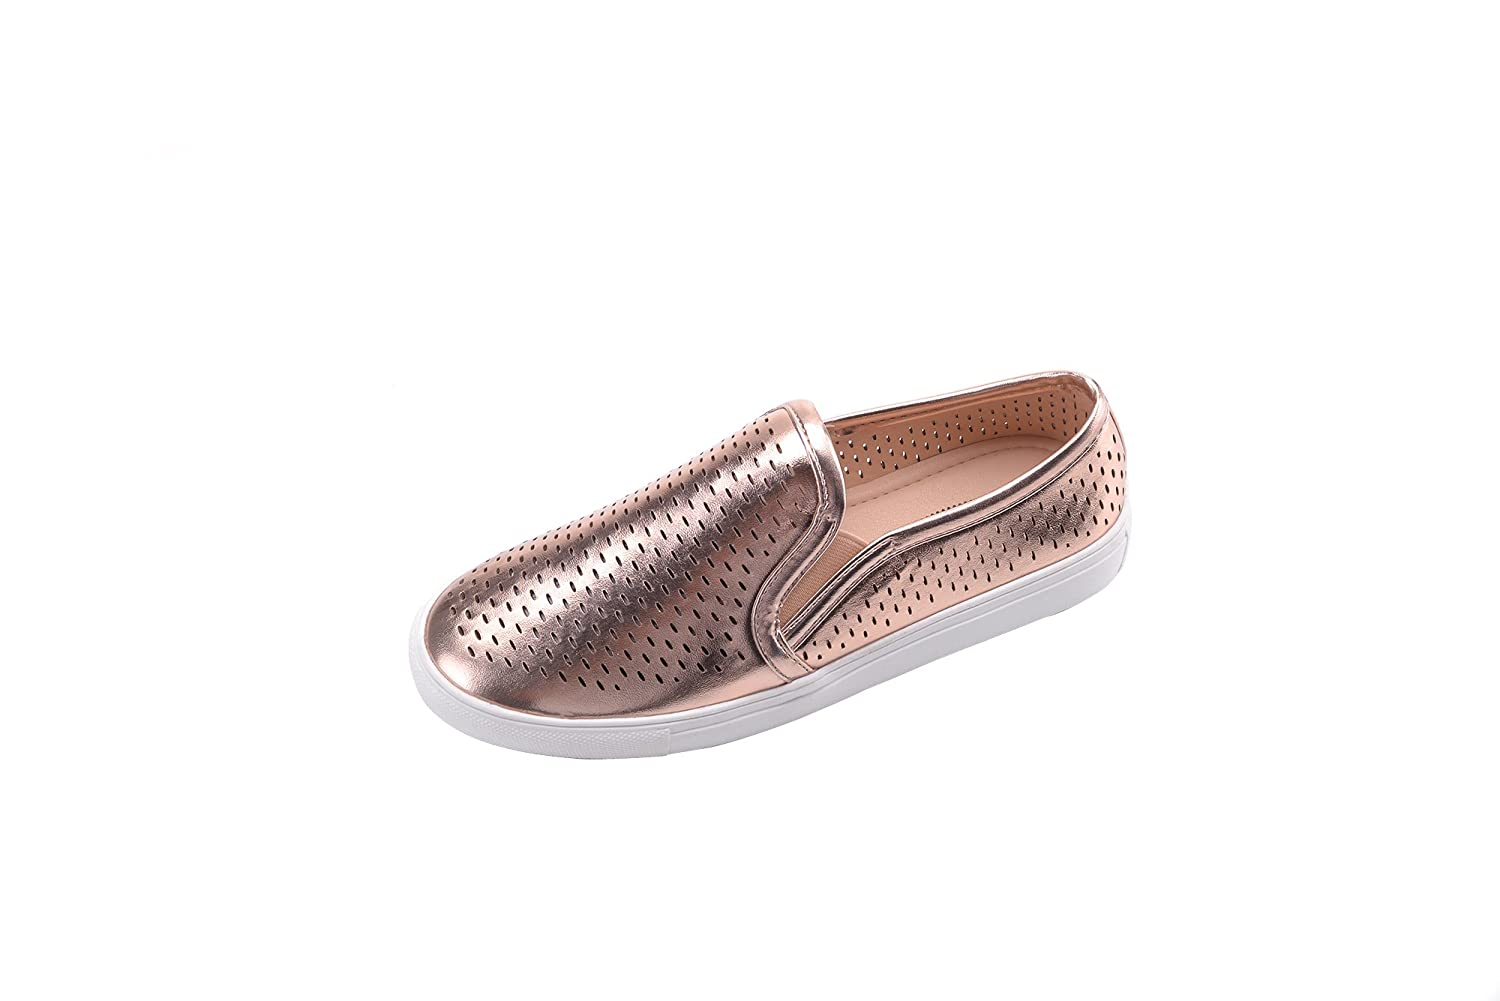 Ashley A Collection EMERLY Women Canvas Slip On Laser Cut Fashion Sneakers, for sale